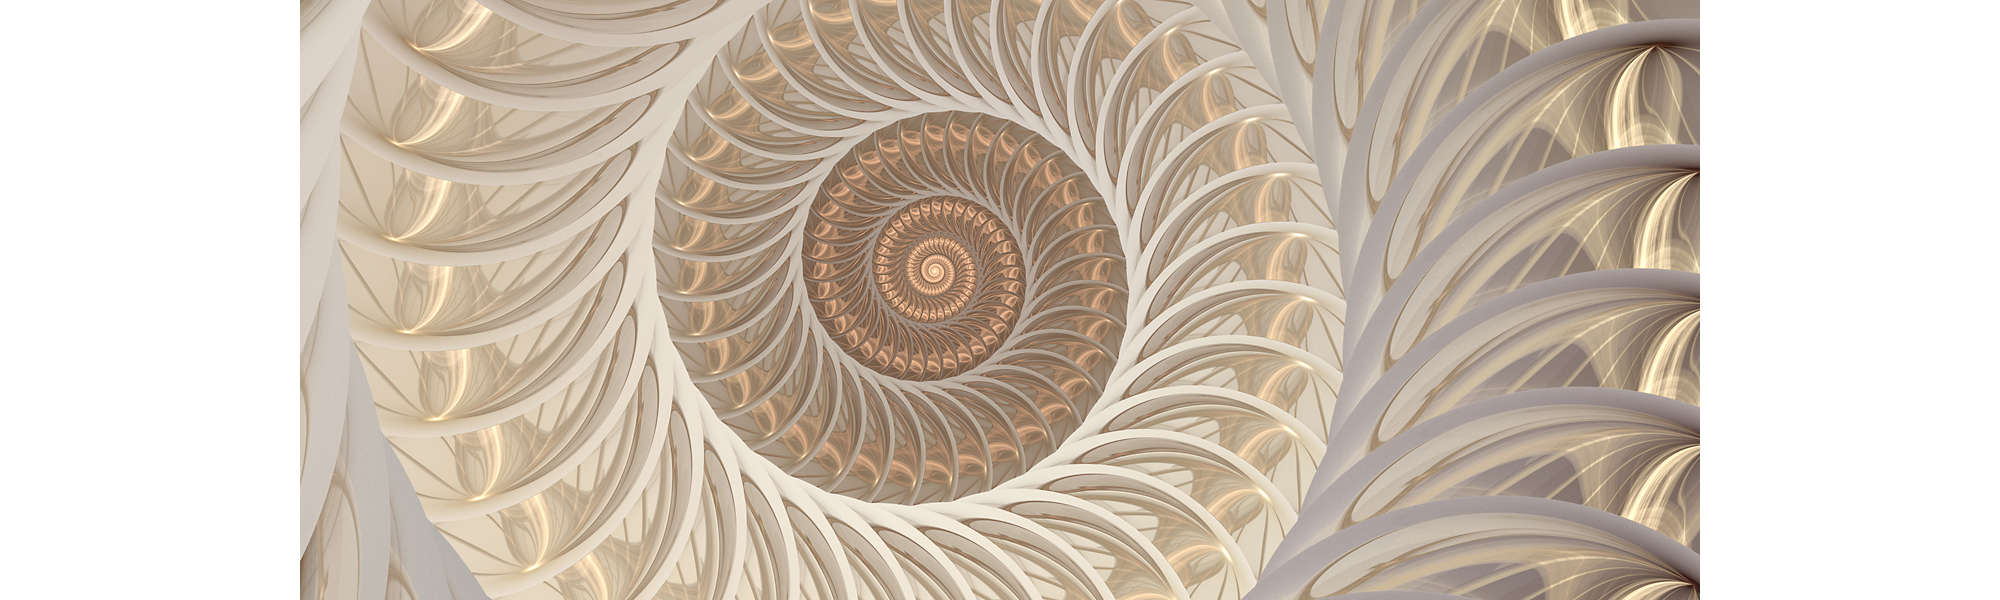 Abstract fractal spiral shell